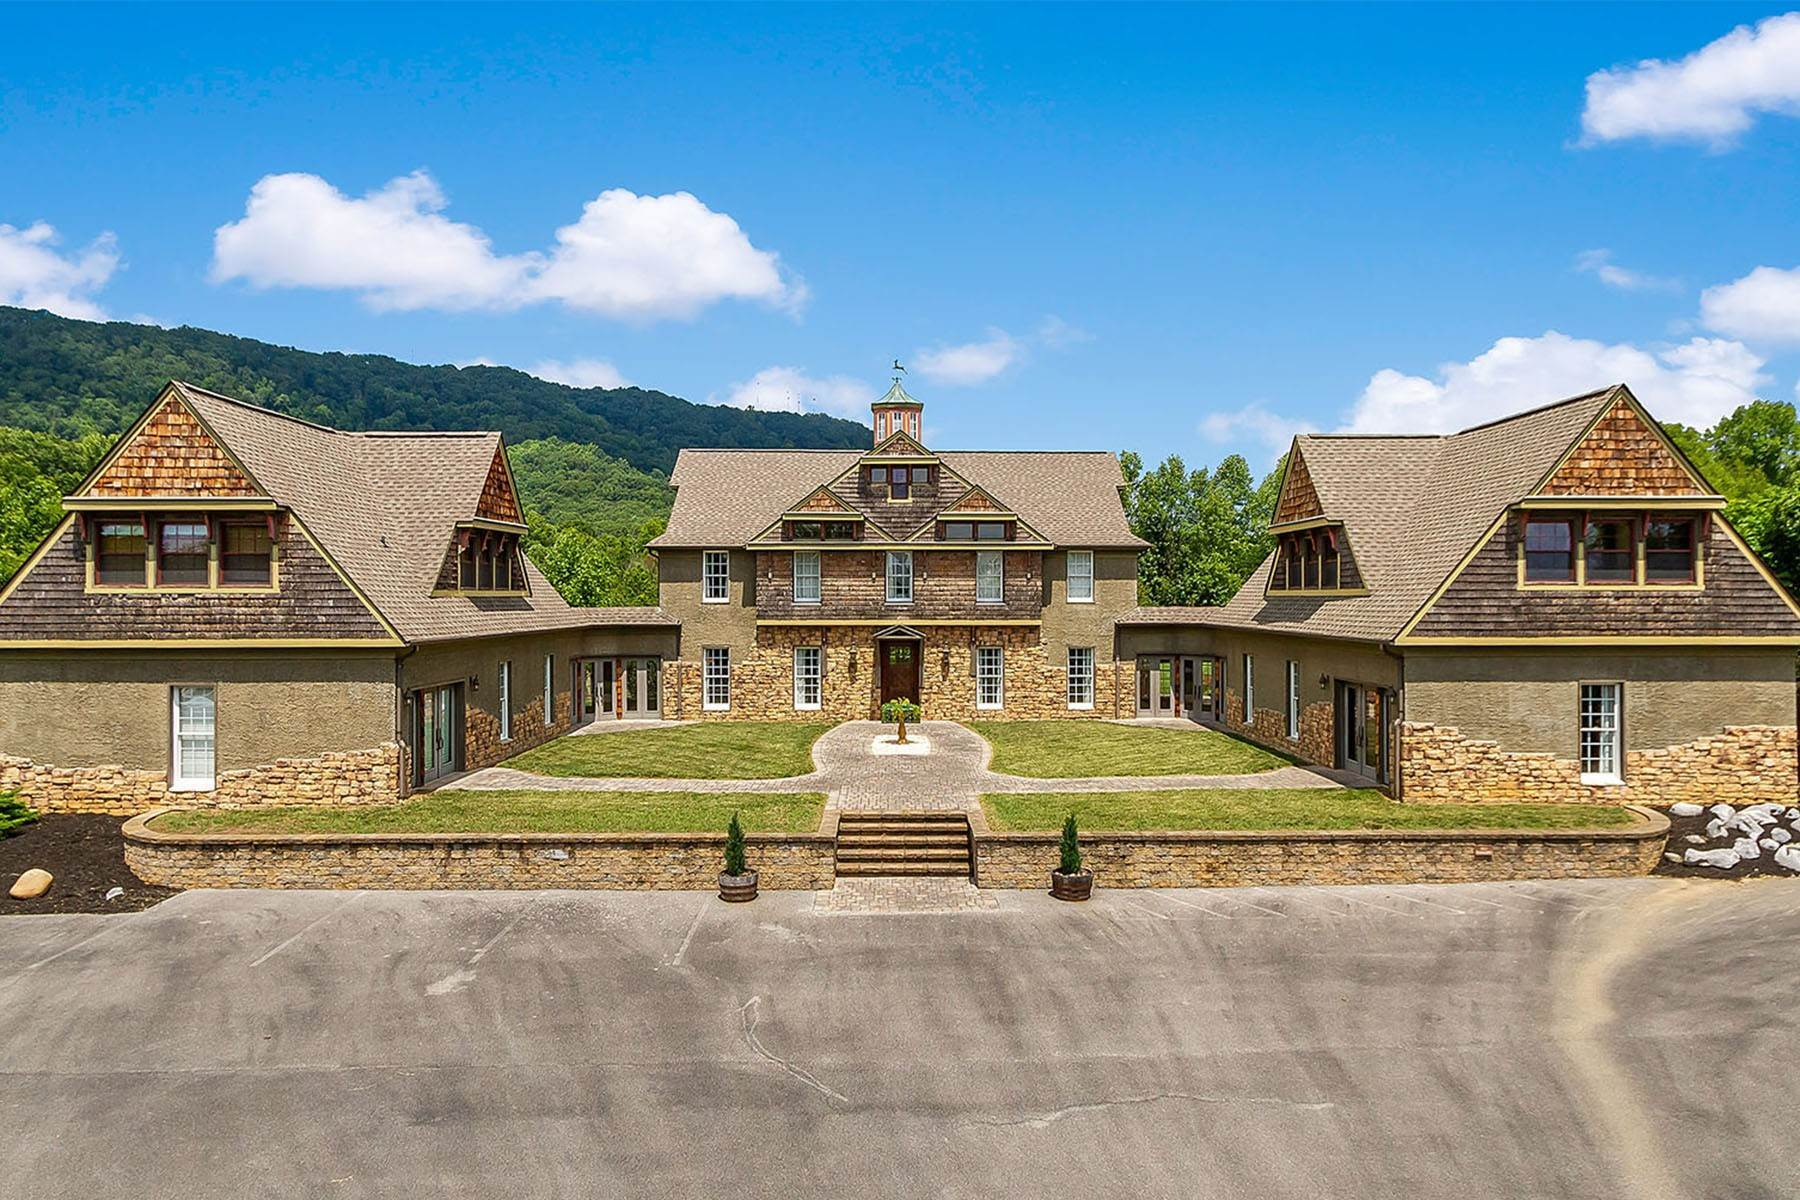 Single Family Homes for Sale at Luxurious Rustic Escape 1128 Saratoga Road Kingsport, Tennessee 37660 United States